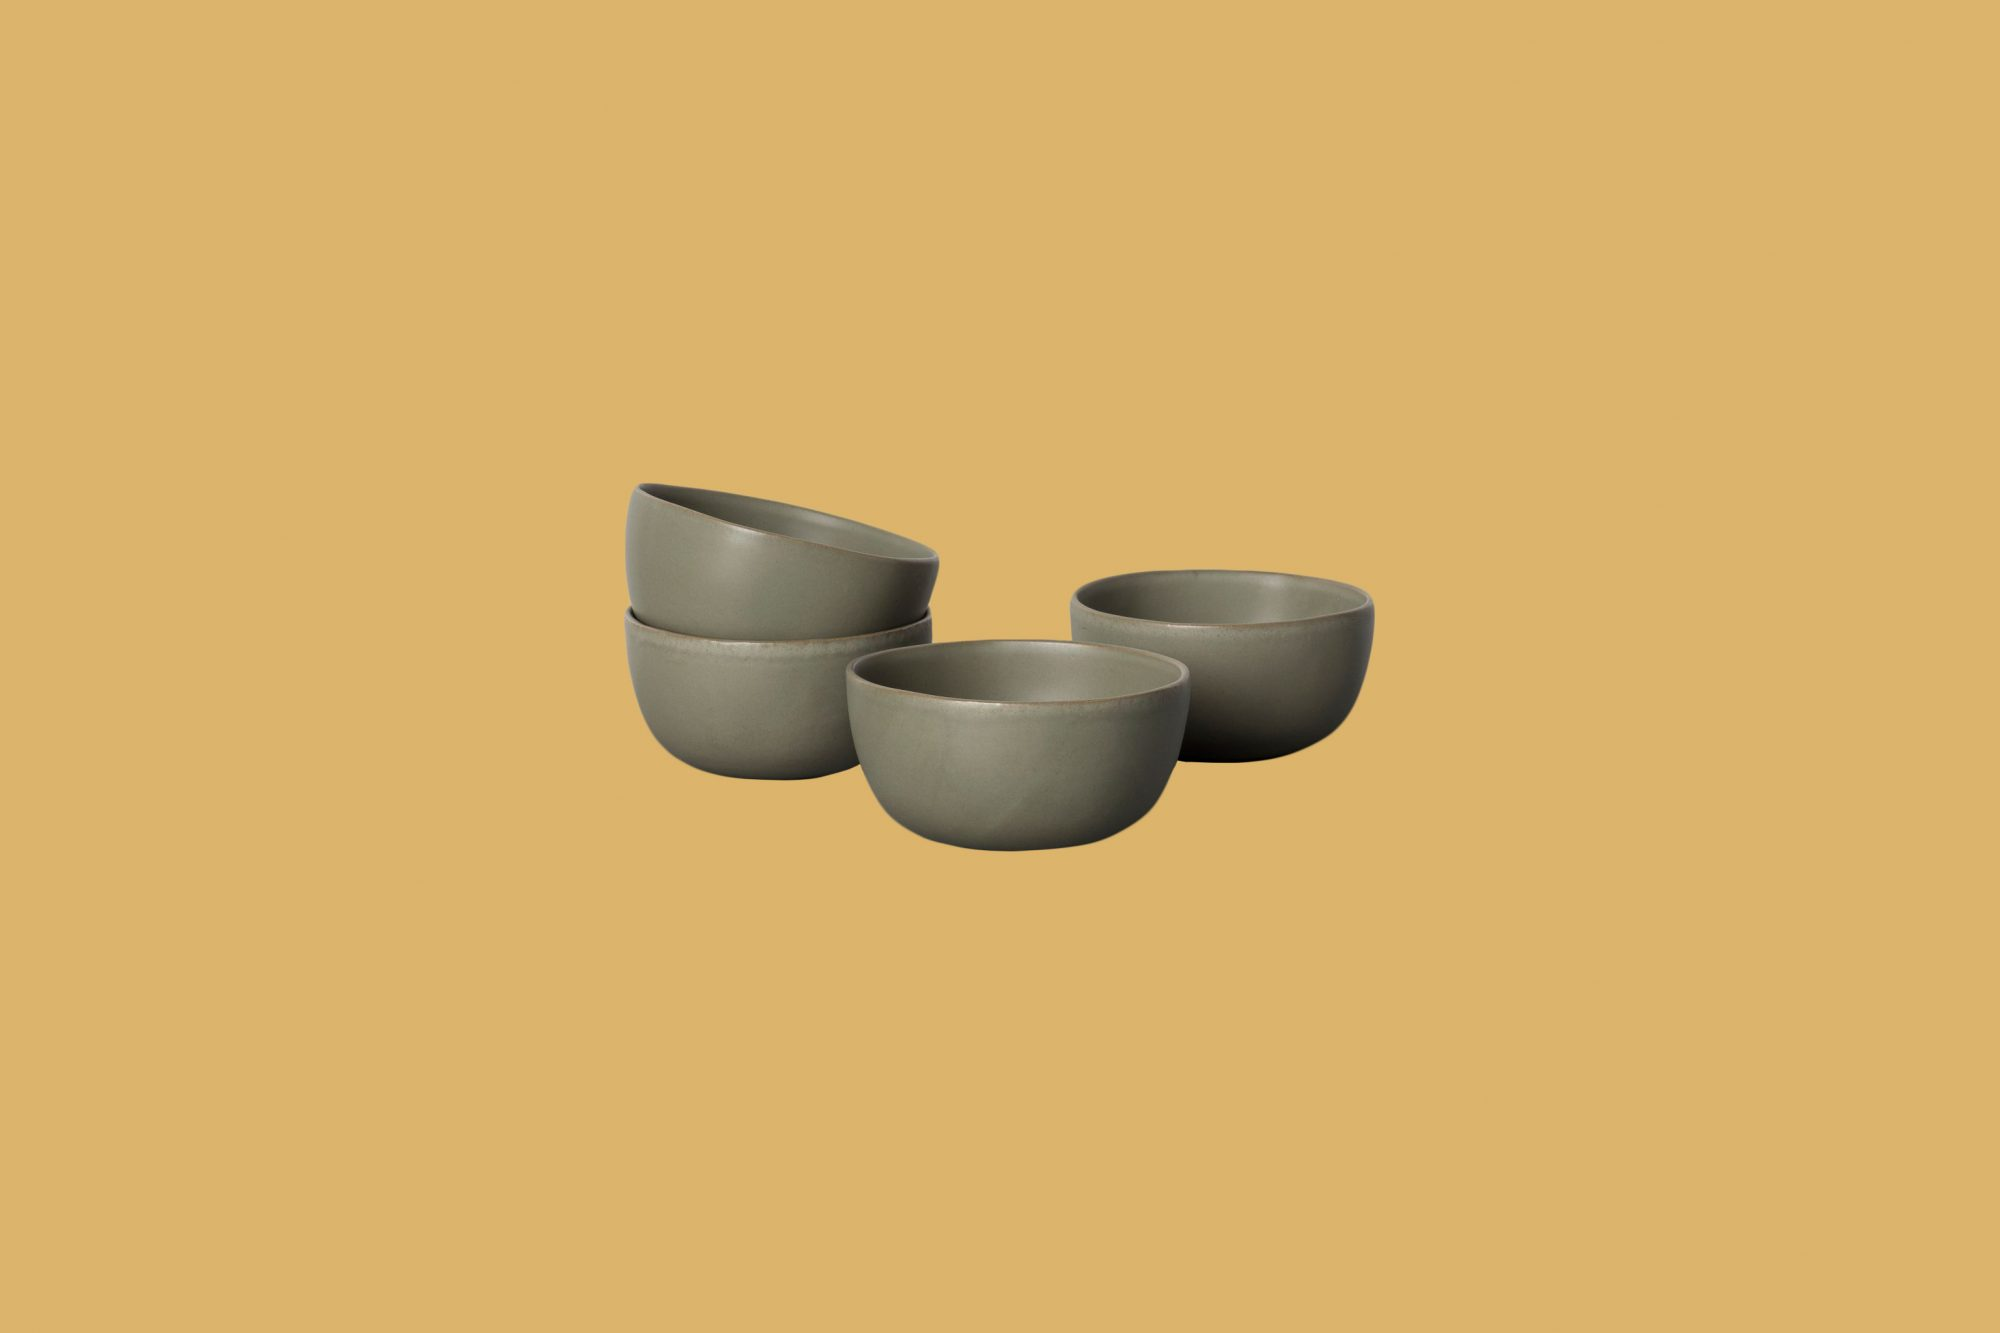 Hearth & Hand with Magnolia Stoneware Cereal Bowl